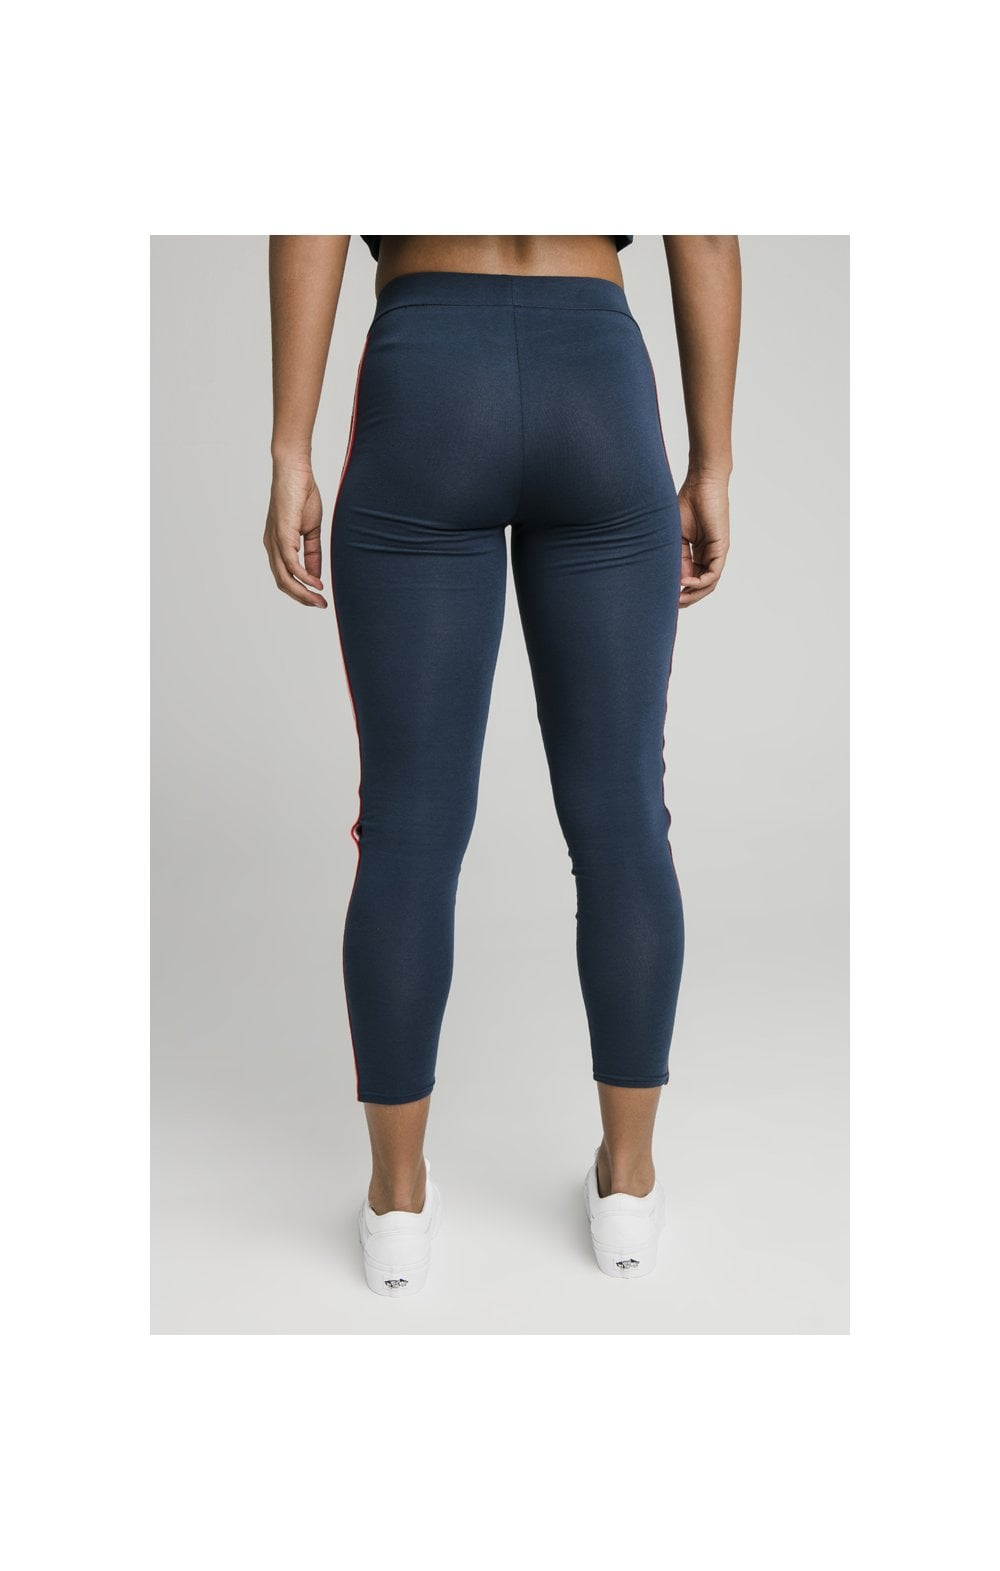 Load image into Gallery viewer, SikSilk Classic Tape Leggings - Navy (4)